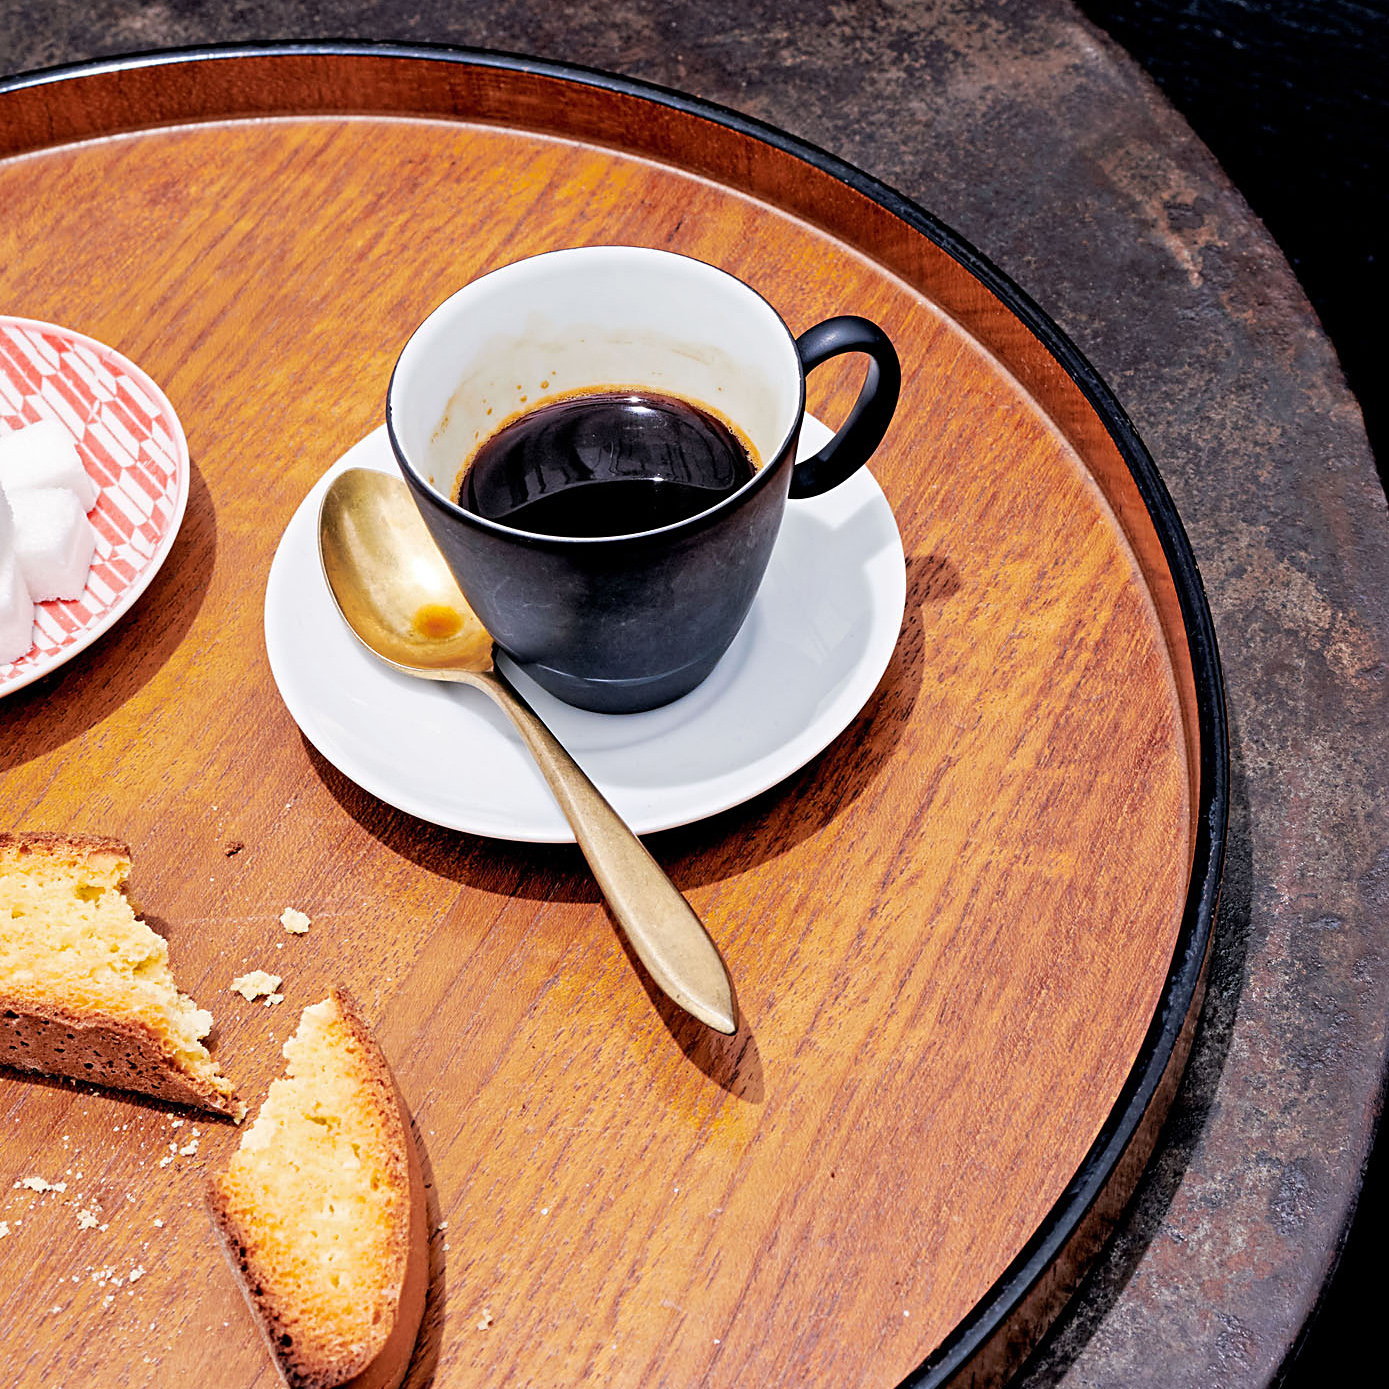 ariel view coffee and saucer on tray table